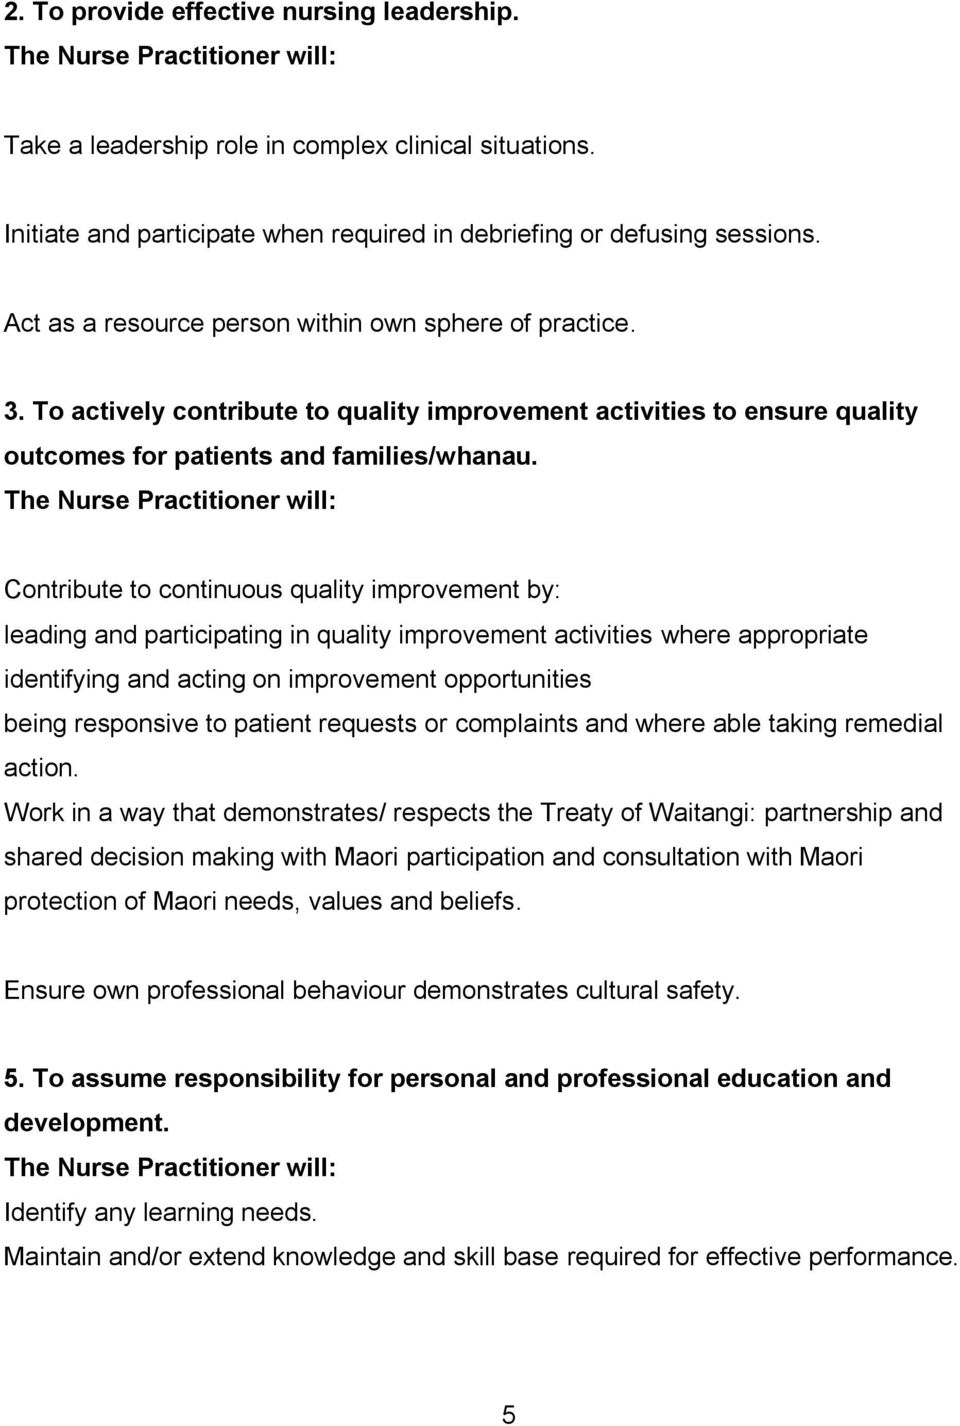 Contribute to continuous quality improvement by: leading and participating in quality improvement activities where appropriate identifying and acting on improvement opportunities being responsive to